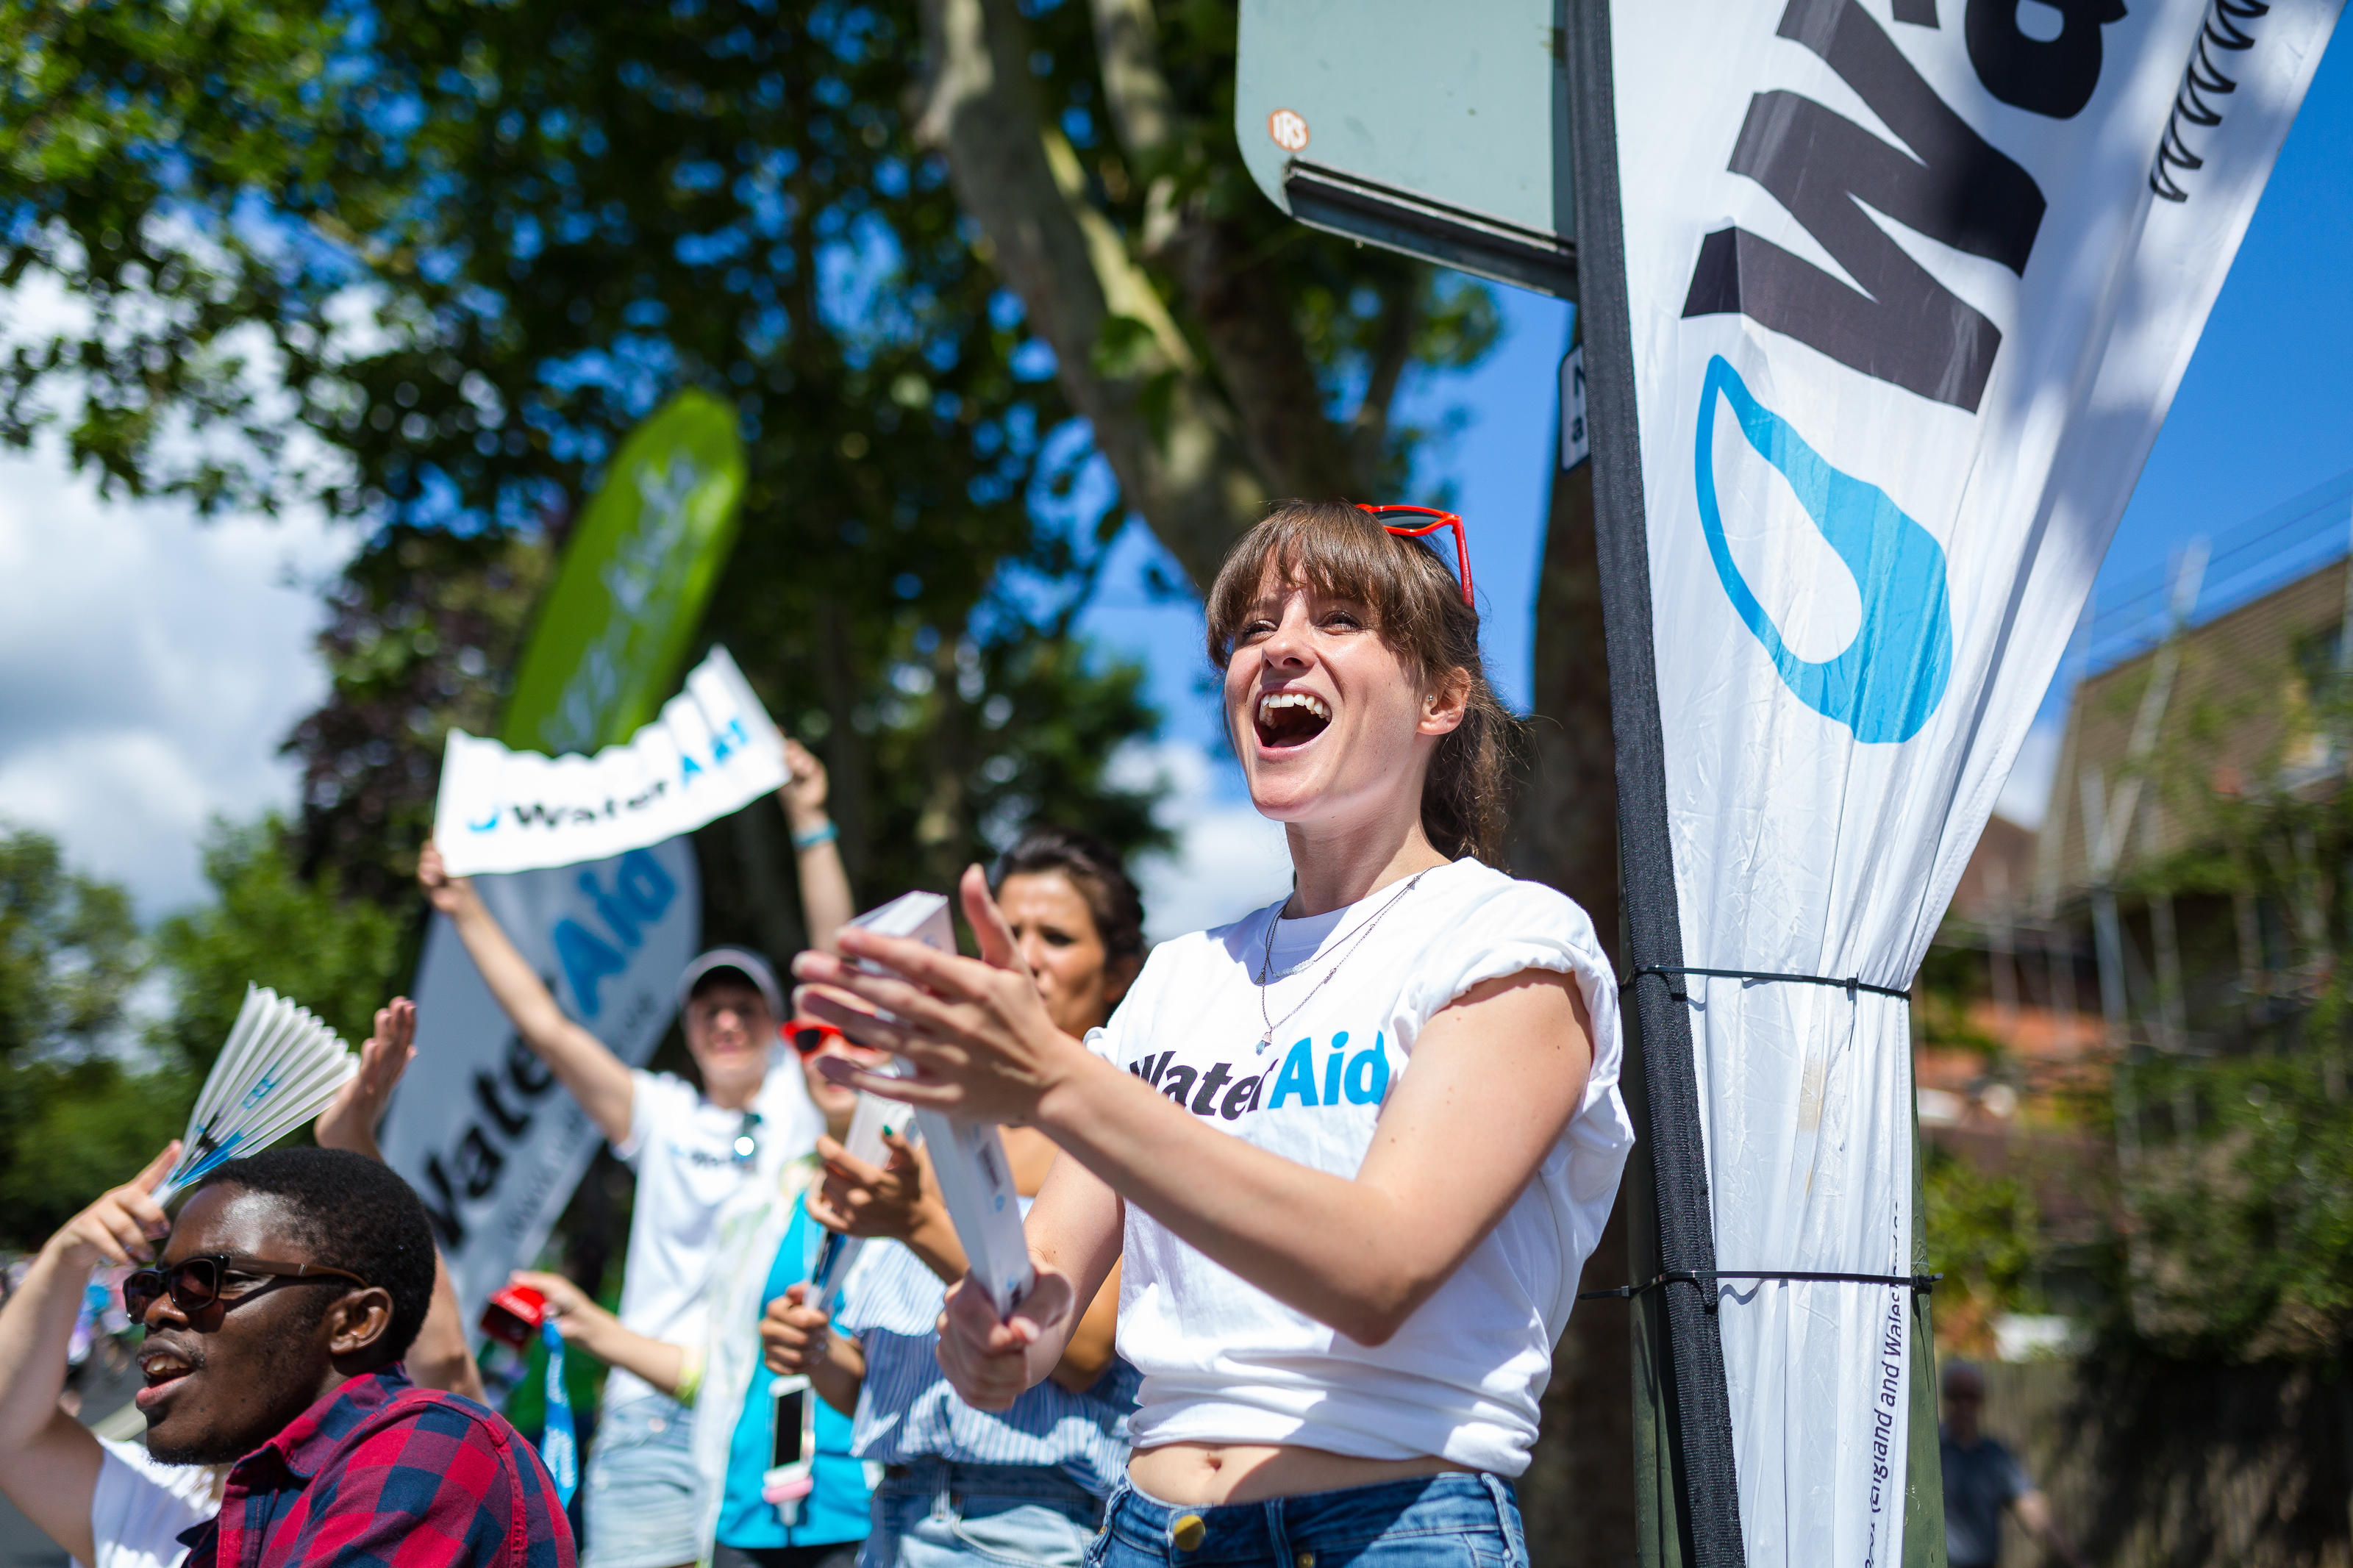 A WaterAid volunteer cheers at RideLondon-Surrey 100 2016.